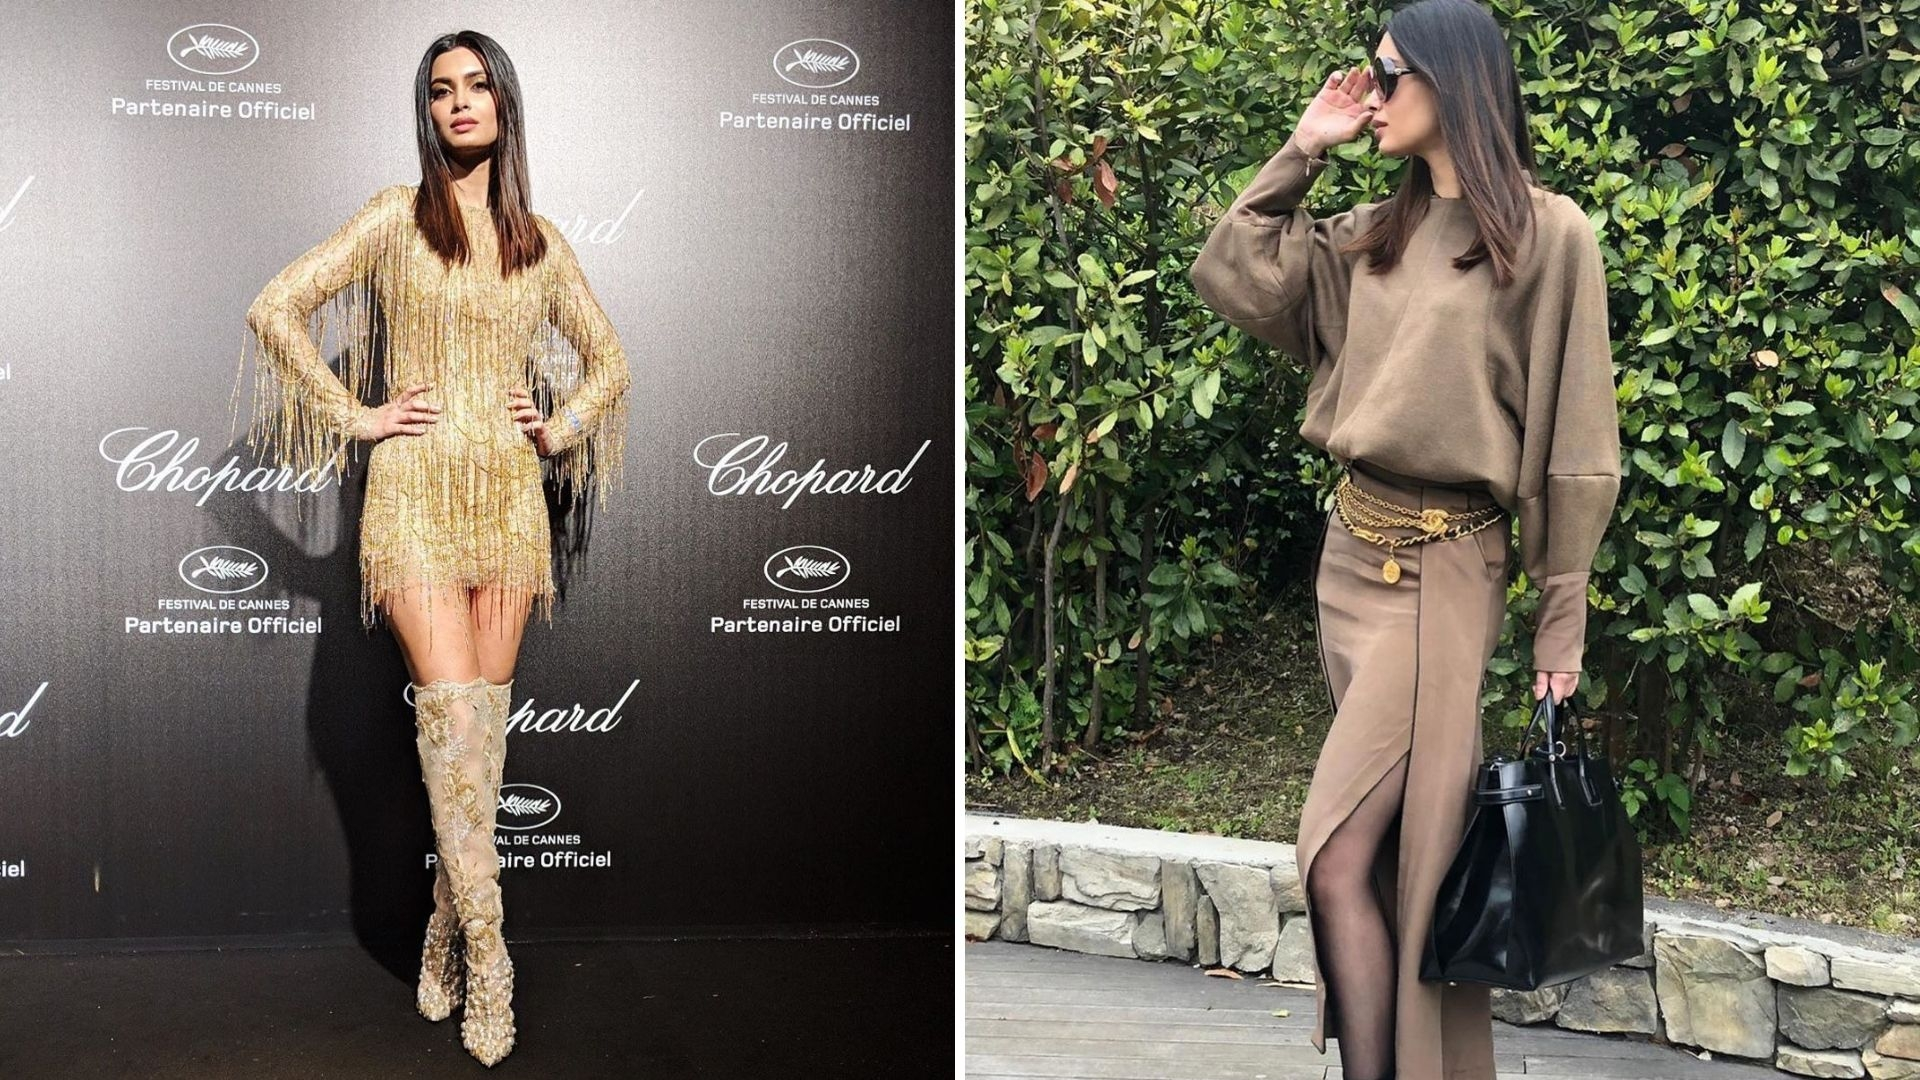 Pics: Diana Penty's Shimmering Cannes Debut at the Chopard Party